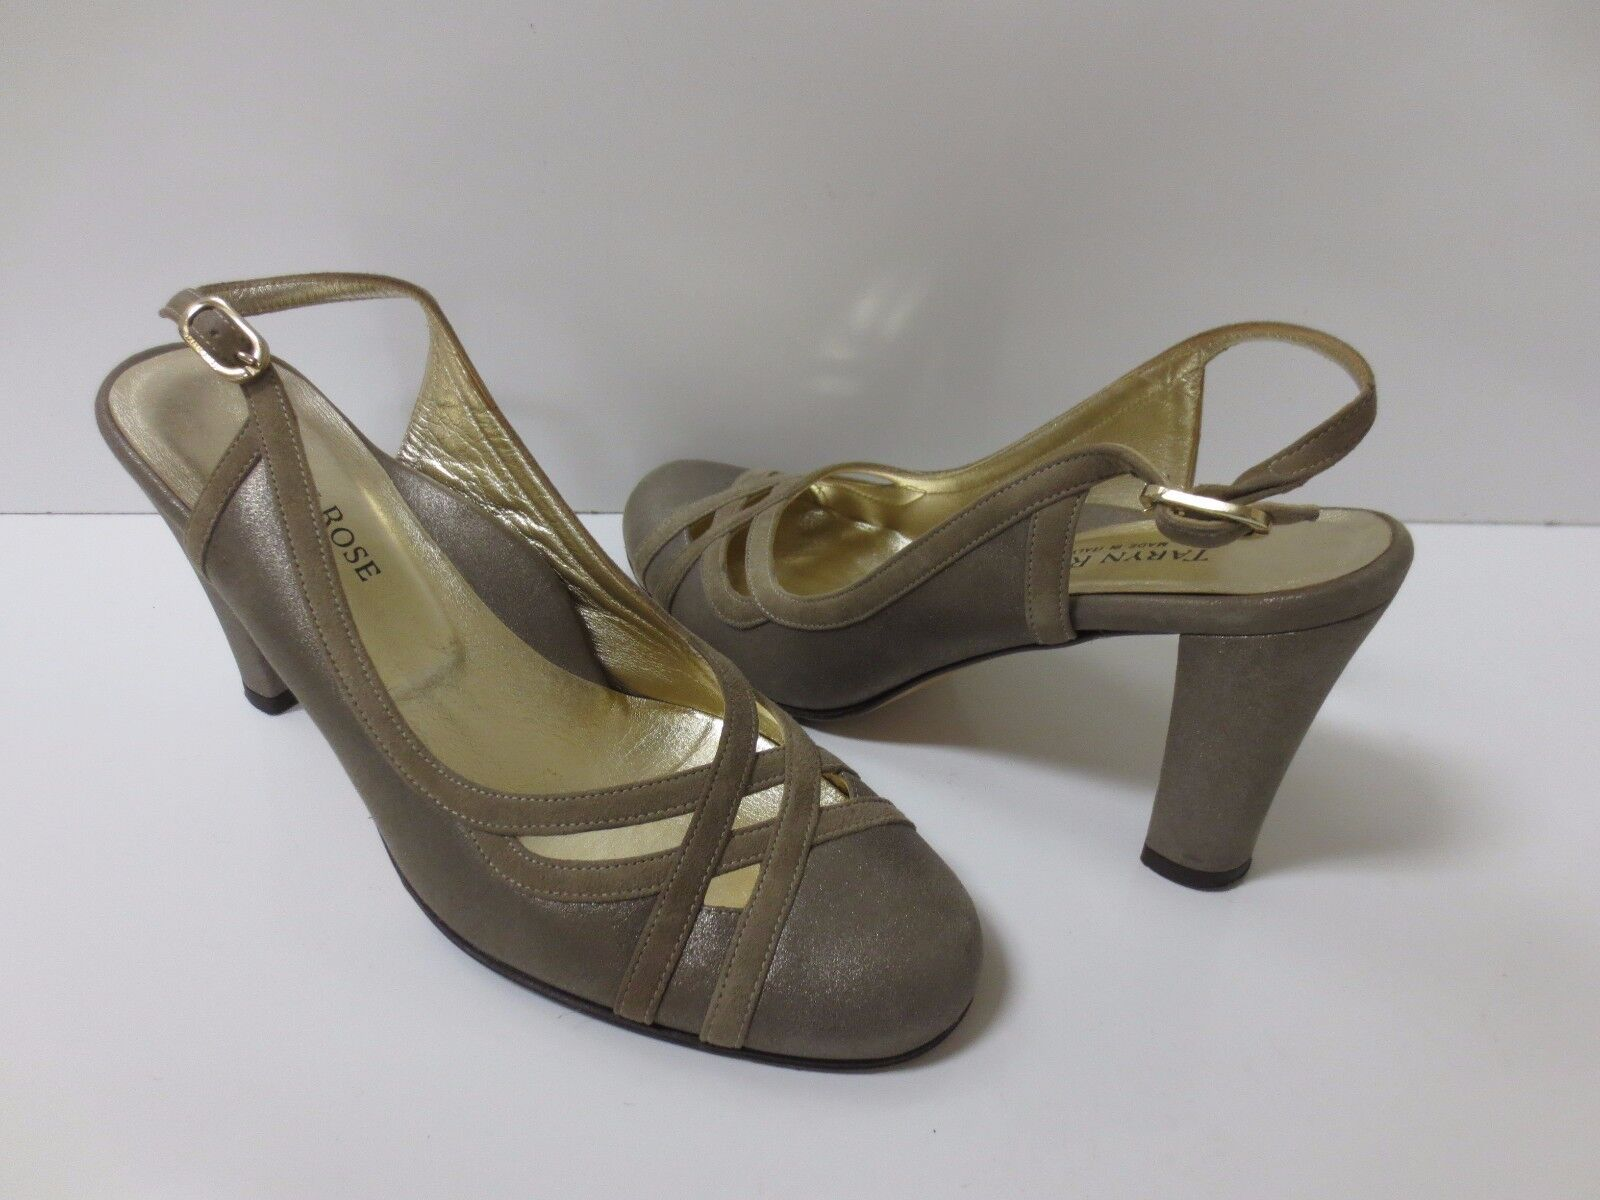 TARYN pink Champagne Leather Slingback Pumps Heels shoes 37.5 MINT